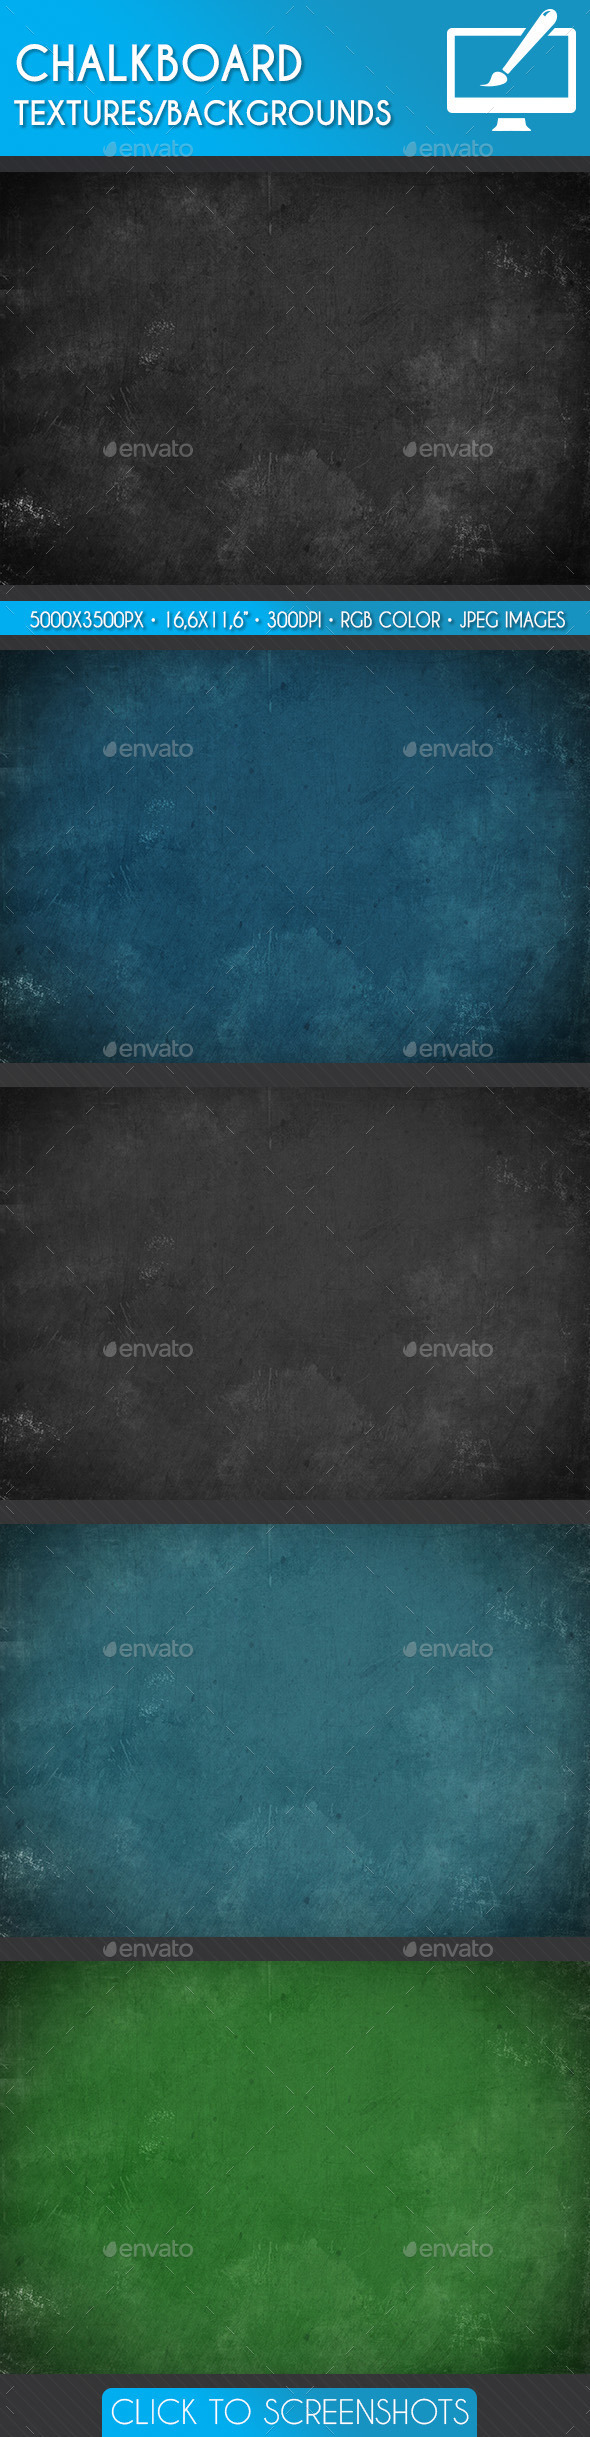 Chalkboard Textures/Backgrounds - Miscellaneous Textures